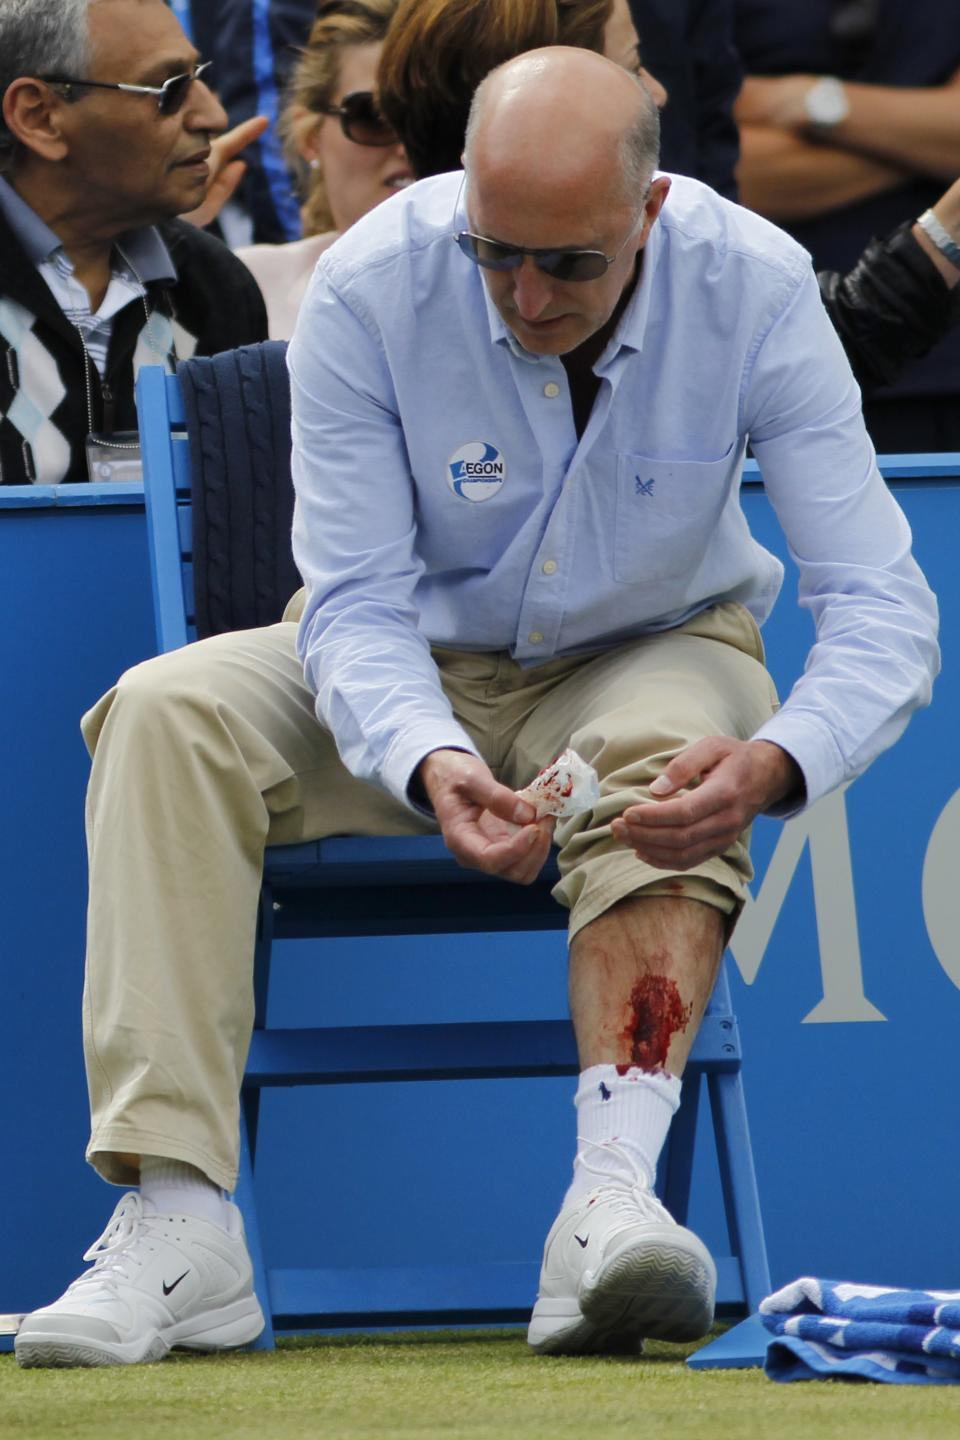 A line judge wipes blood from his injured leg after Argentina's David Nalbandian kicked a small barrier surrounding the judge, leading to his disqualification during the Queen's Club grass court championships final tennis match against Croatia's Marin Cilic, London, Sunday, June 17, 2012. (AP Photo/Sang Tan)